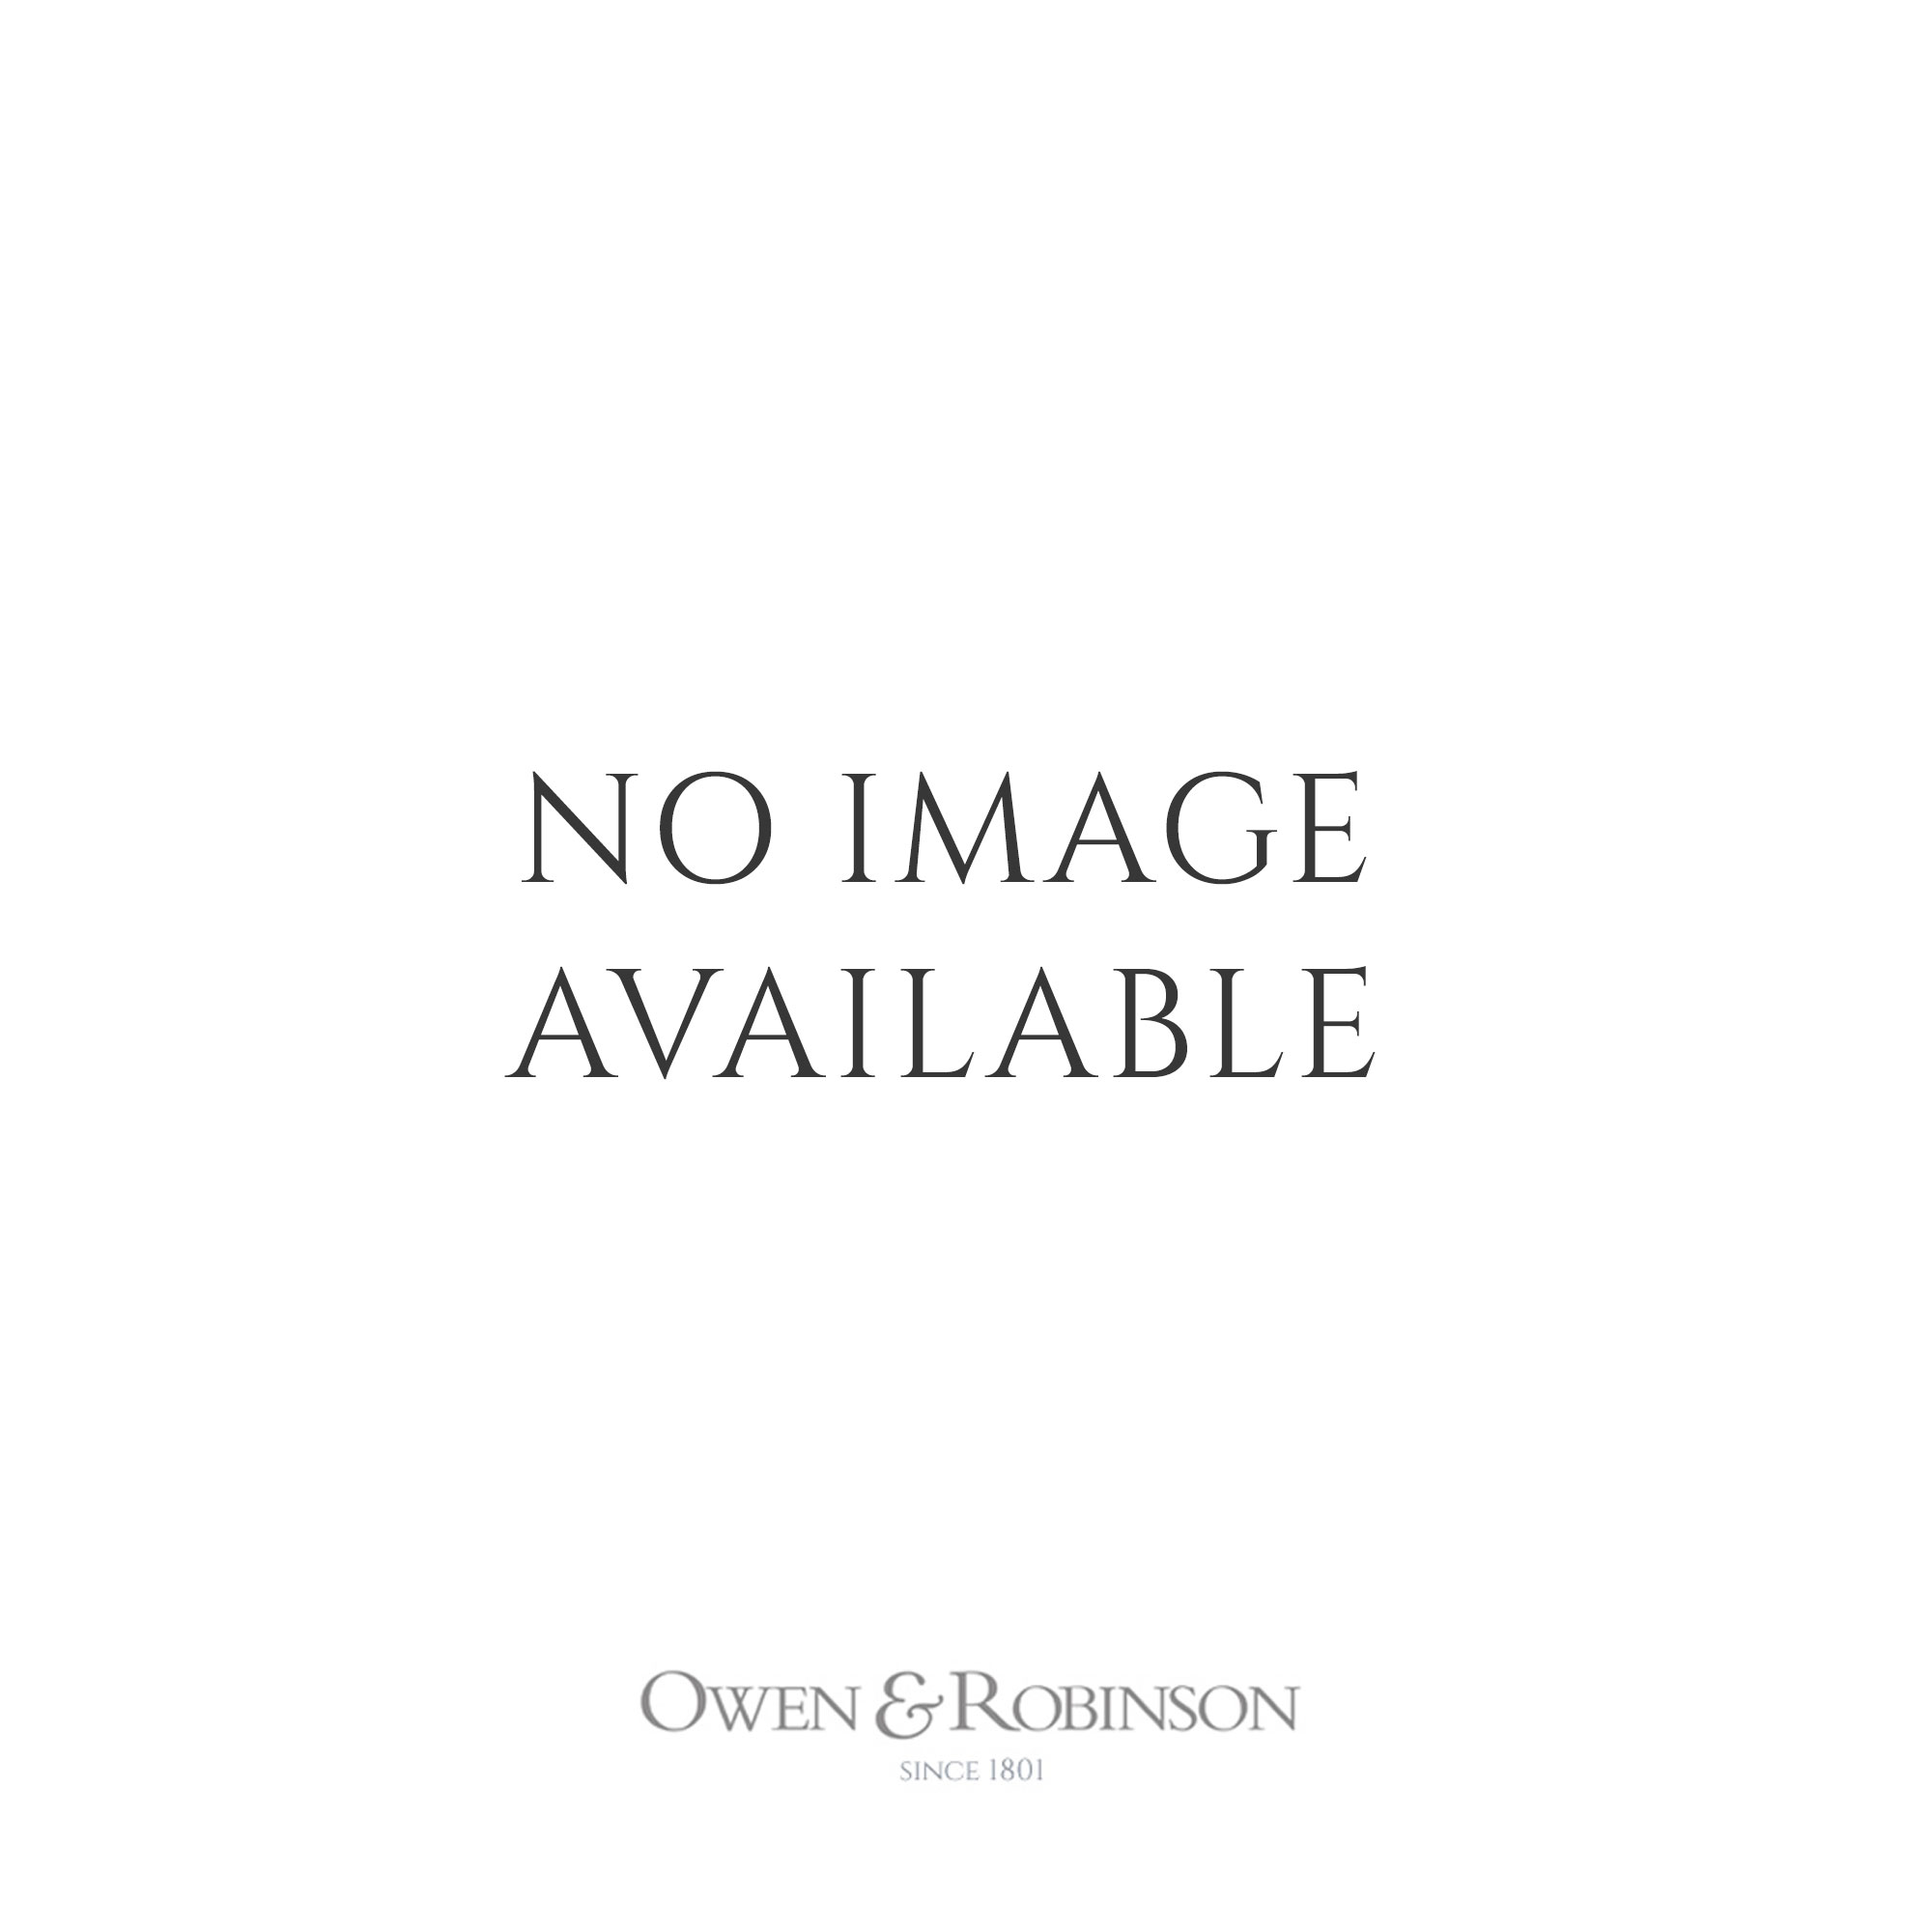 Georg Jensen 2016 Christmas Collectibles Gold Plated Magnolia Wreath Ornament